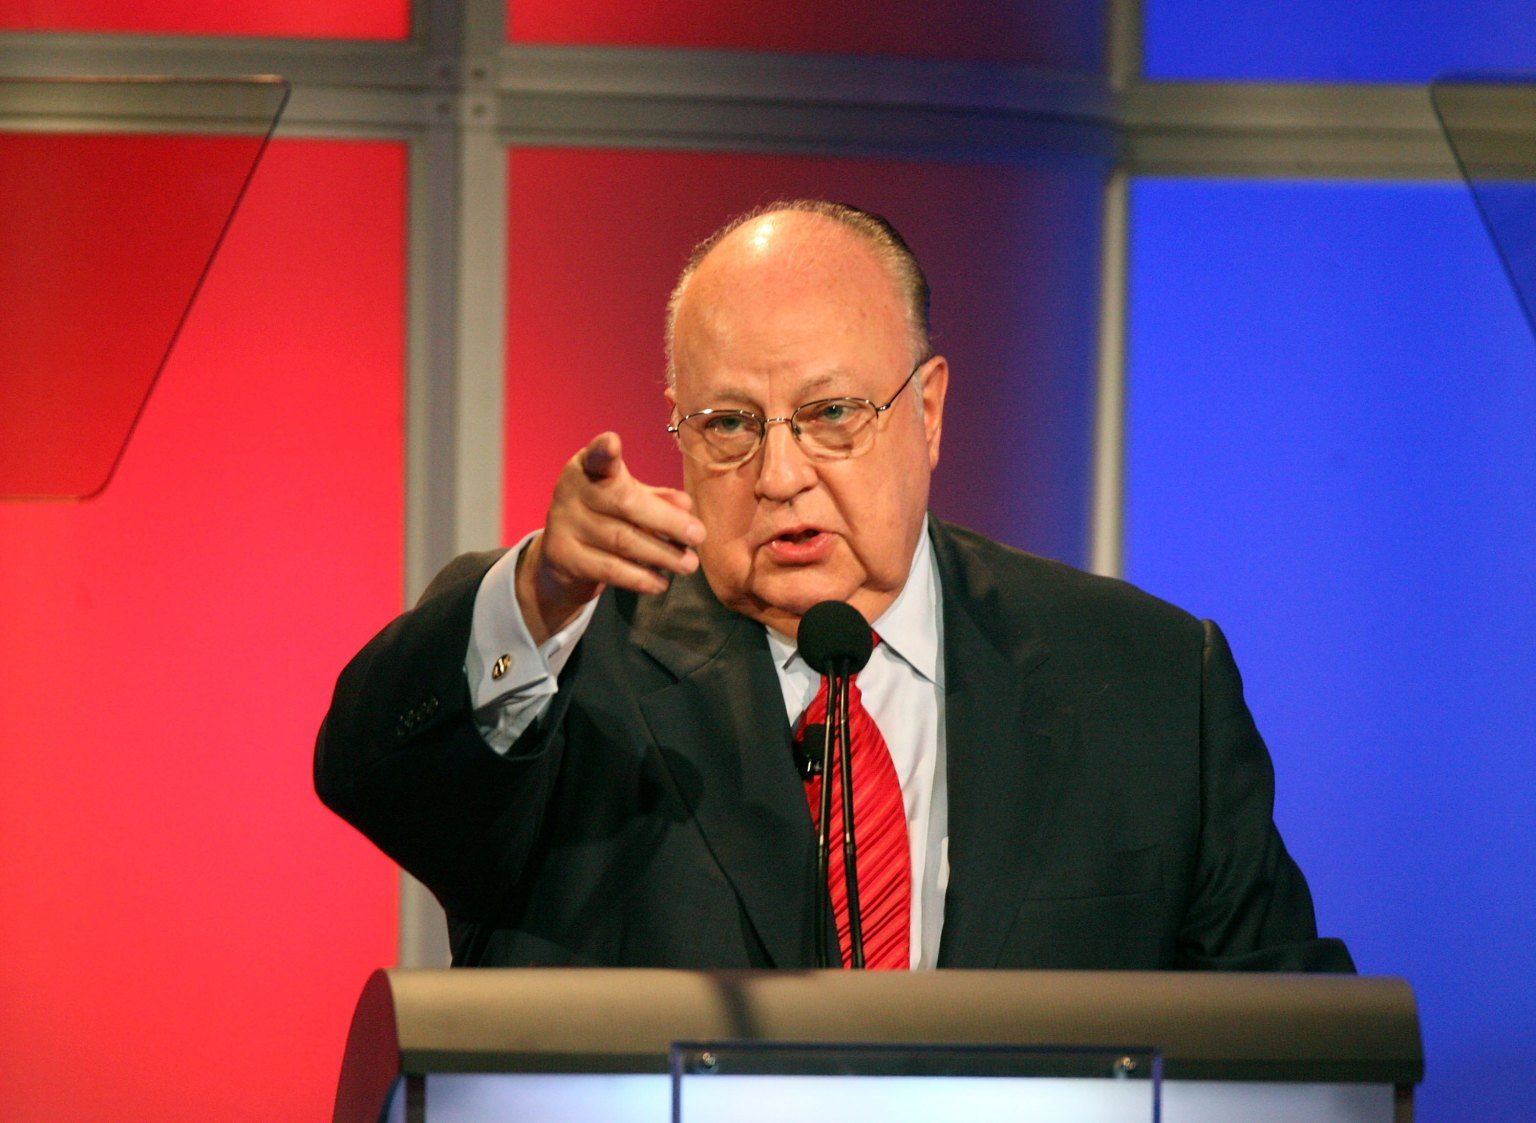 """One of Fox News honcho Roger Ailes' closest associates was fired from the cable network last month after the discovery of undisclosed """"financial issues,"""" the Hollywood Reporter revealed on Tuesday. Brian Lewis, executive vice president of communications at Fox News and longtime Ailes deputy, was fired on July 25, a network spokesman confirmed in a statement to journalists."""